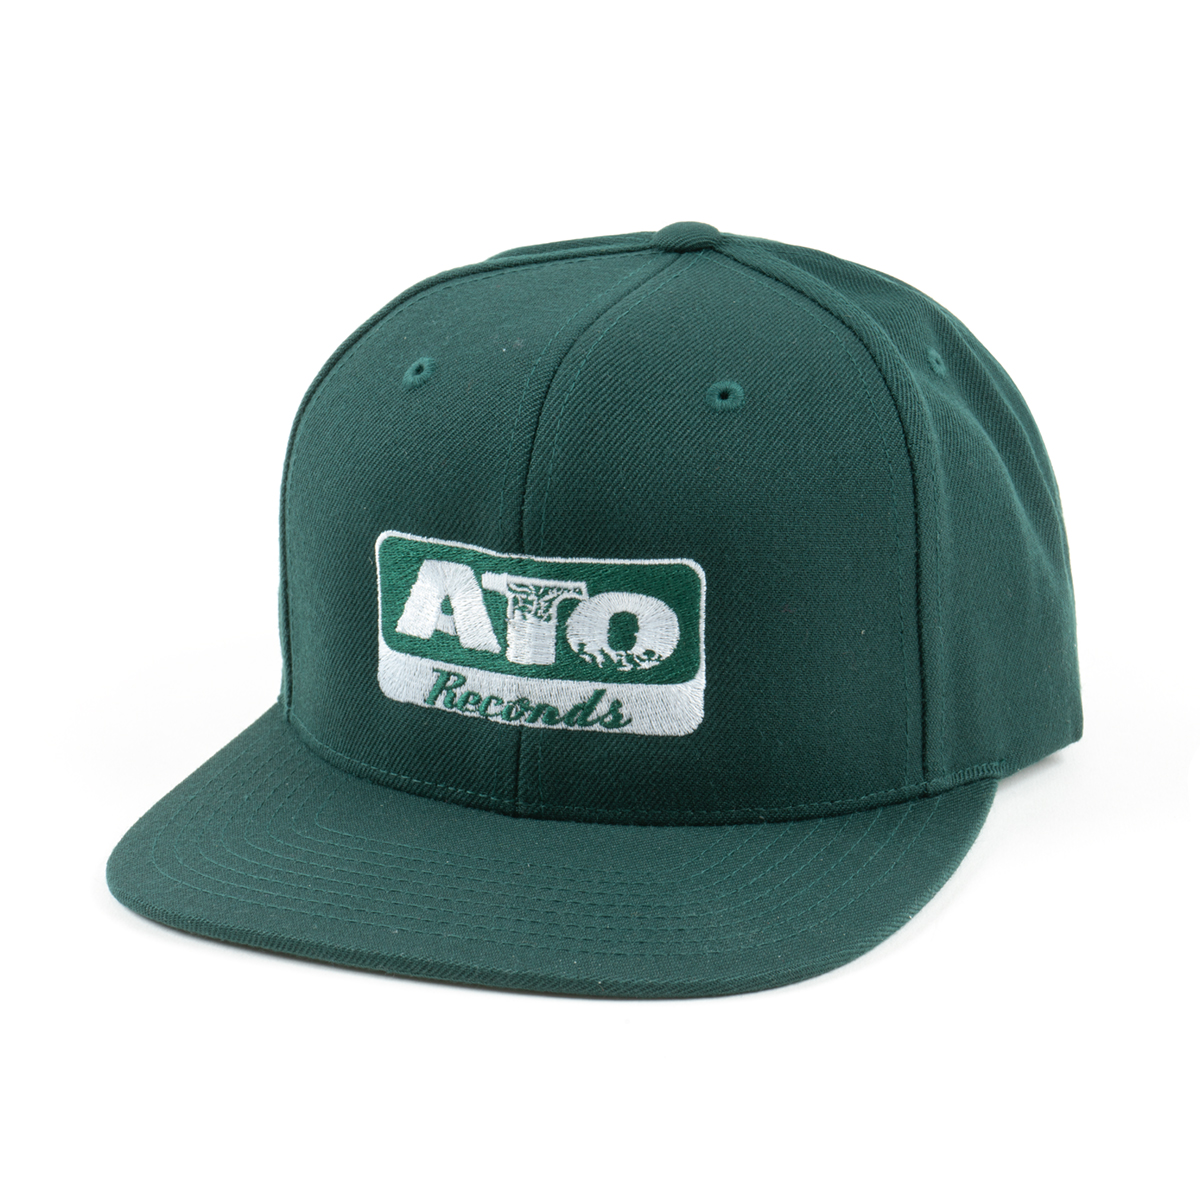 ATO Records - GREEN Snapback hat